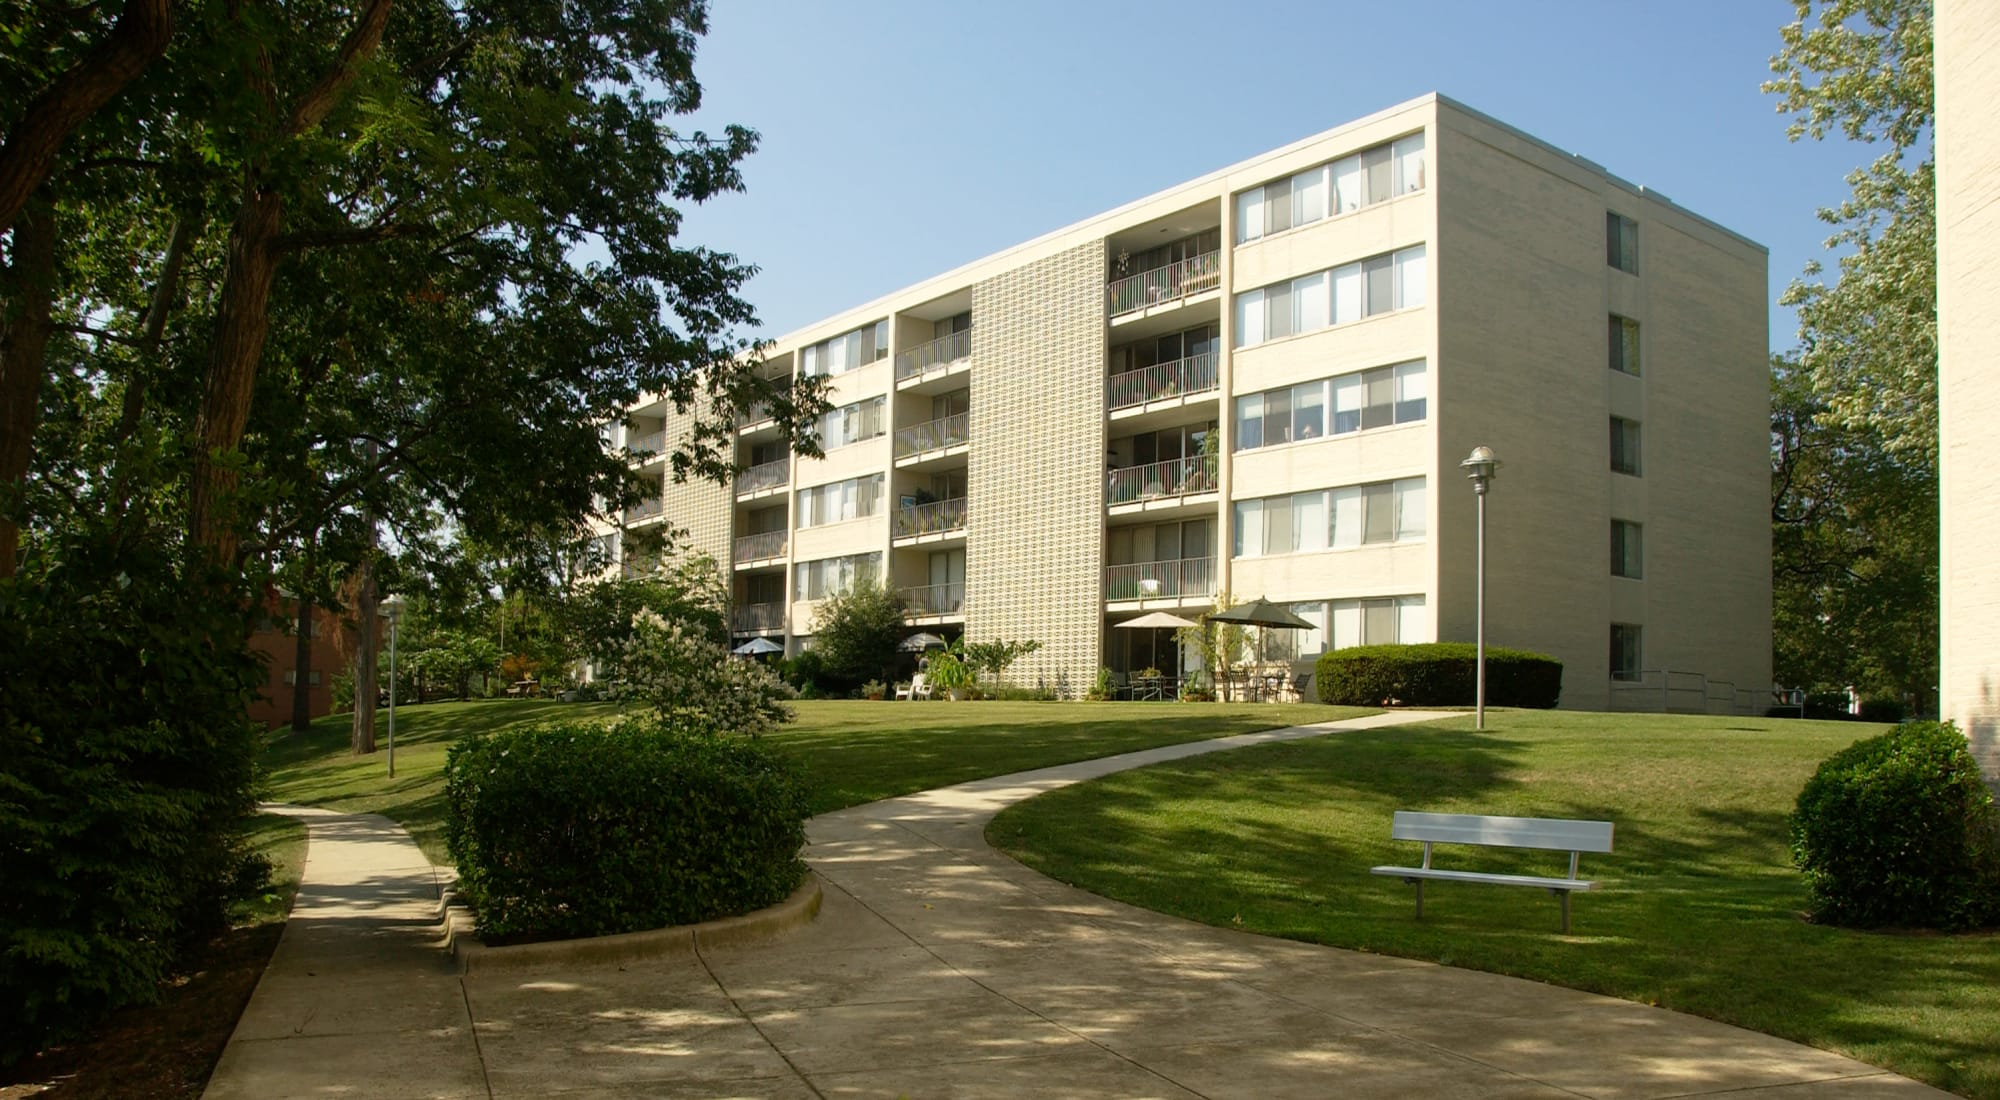 Apartments at Watergate Pointe in Annapolis, Maryland